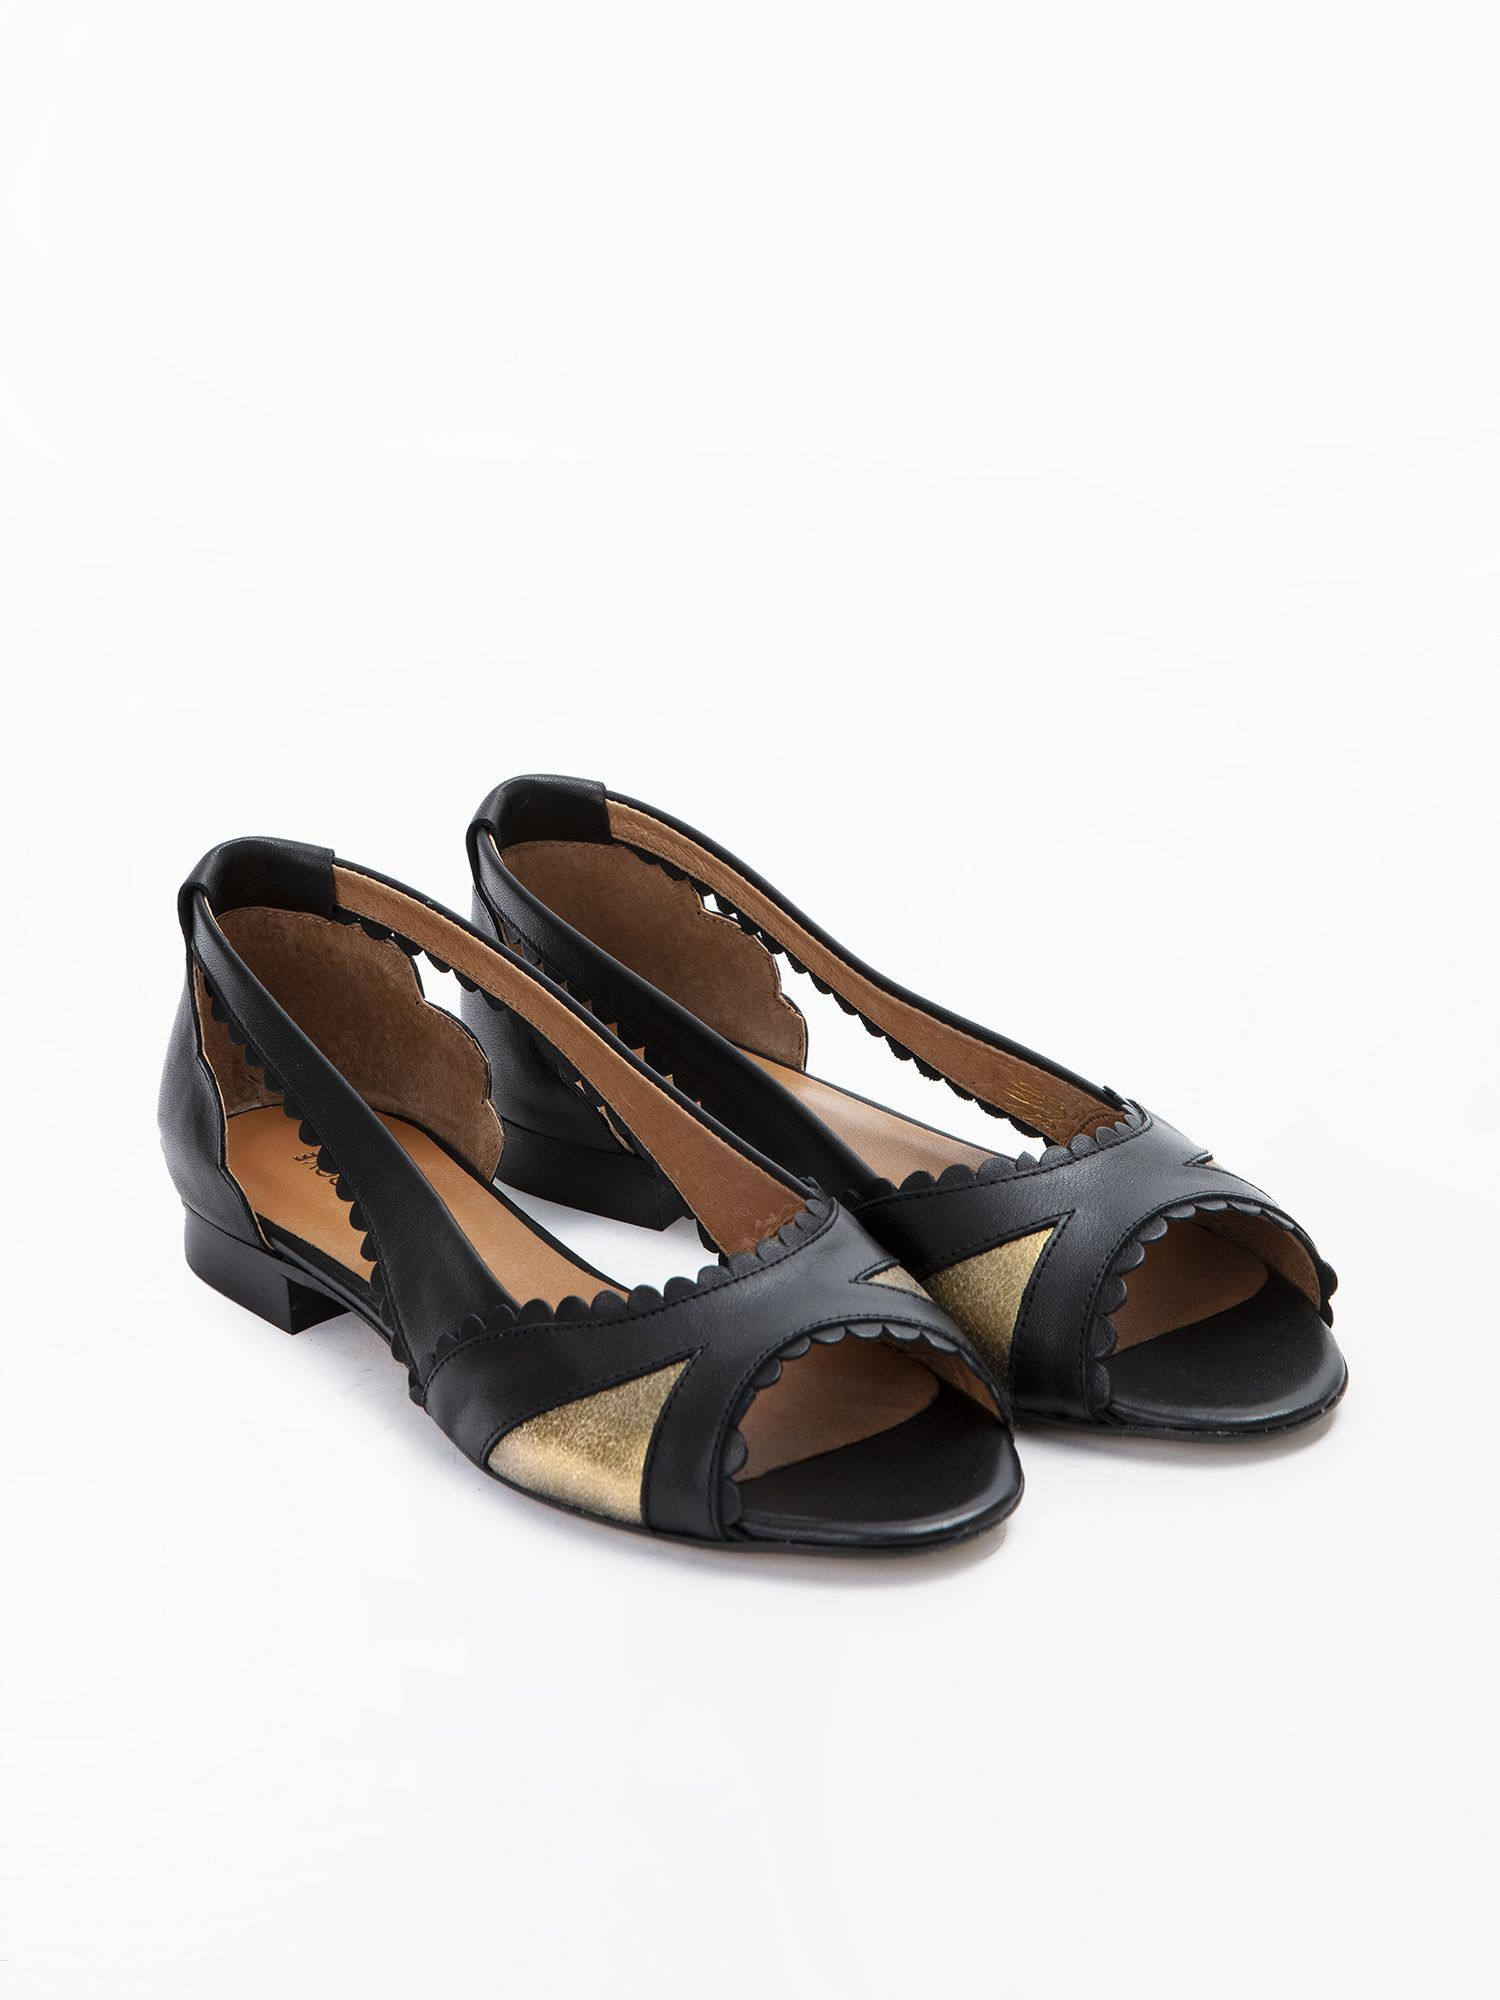 schmoove.fr Retro Pump - Sauvage - Black